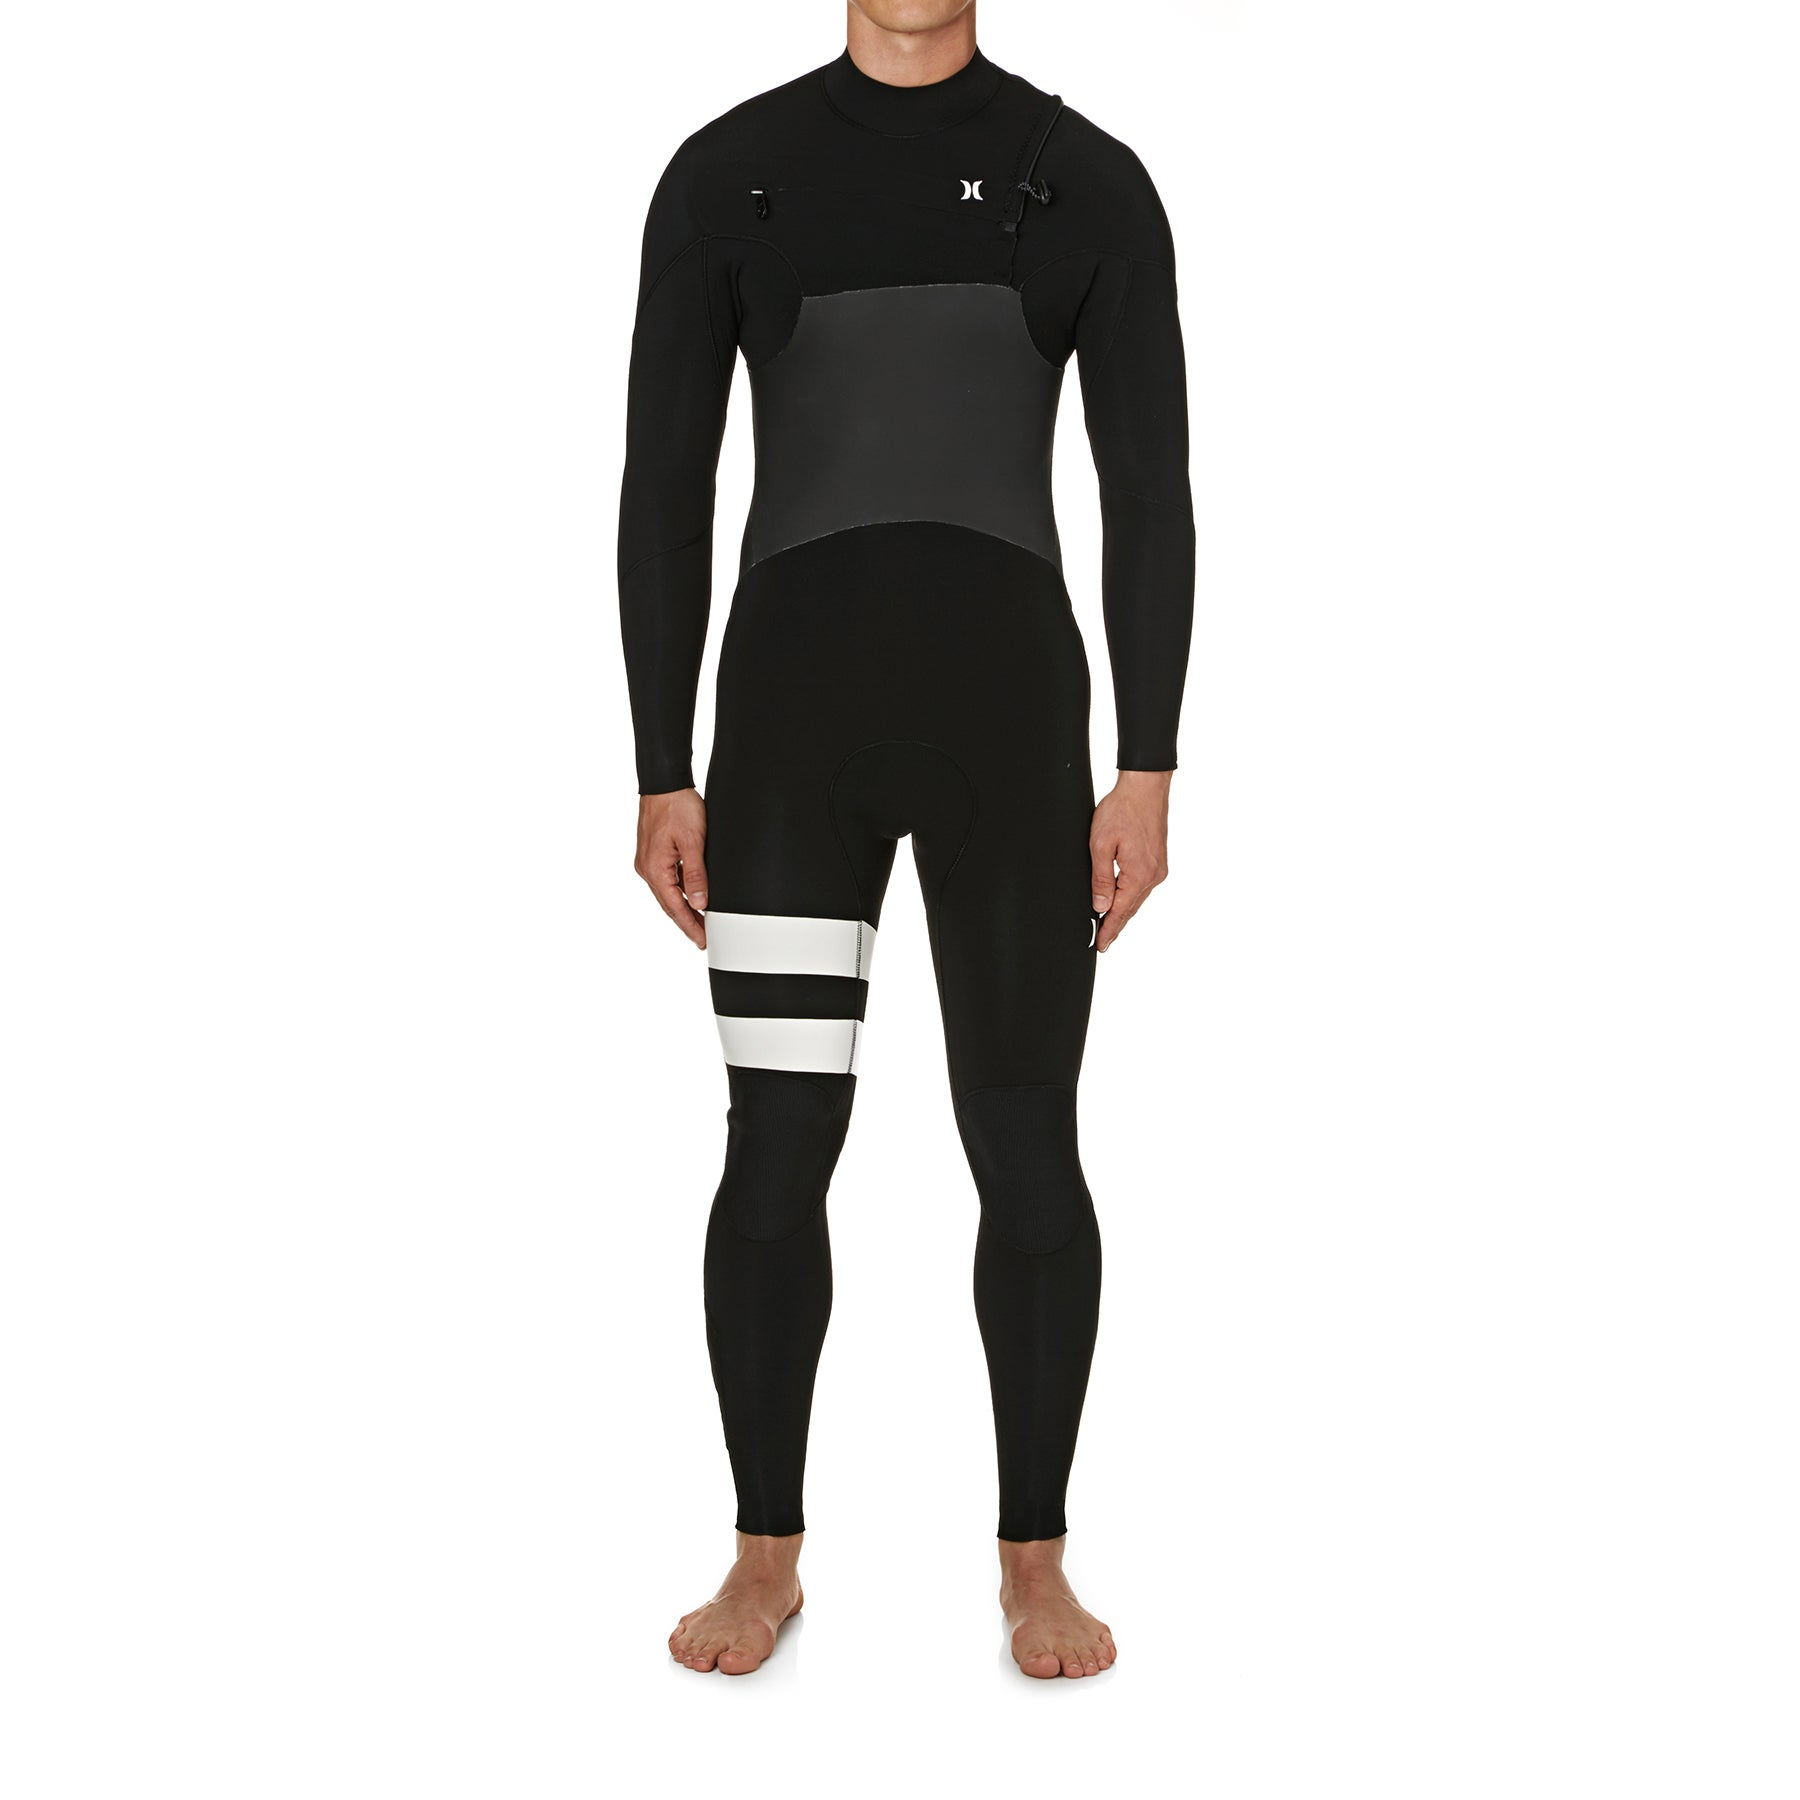 Hurley Advantage Plus 4/3mm 2019 Chest Zip Wetsuit - Black